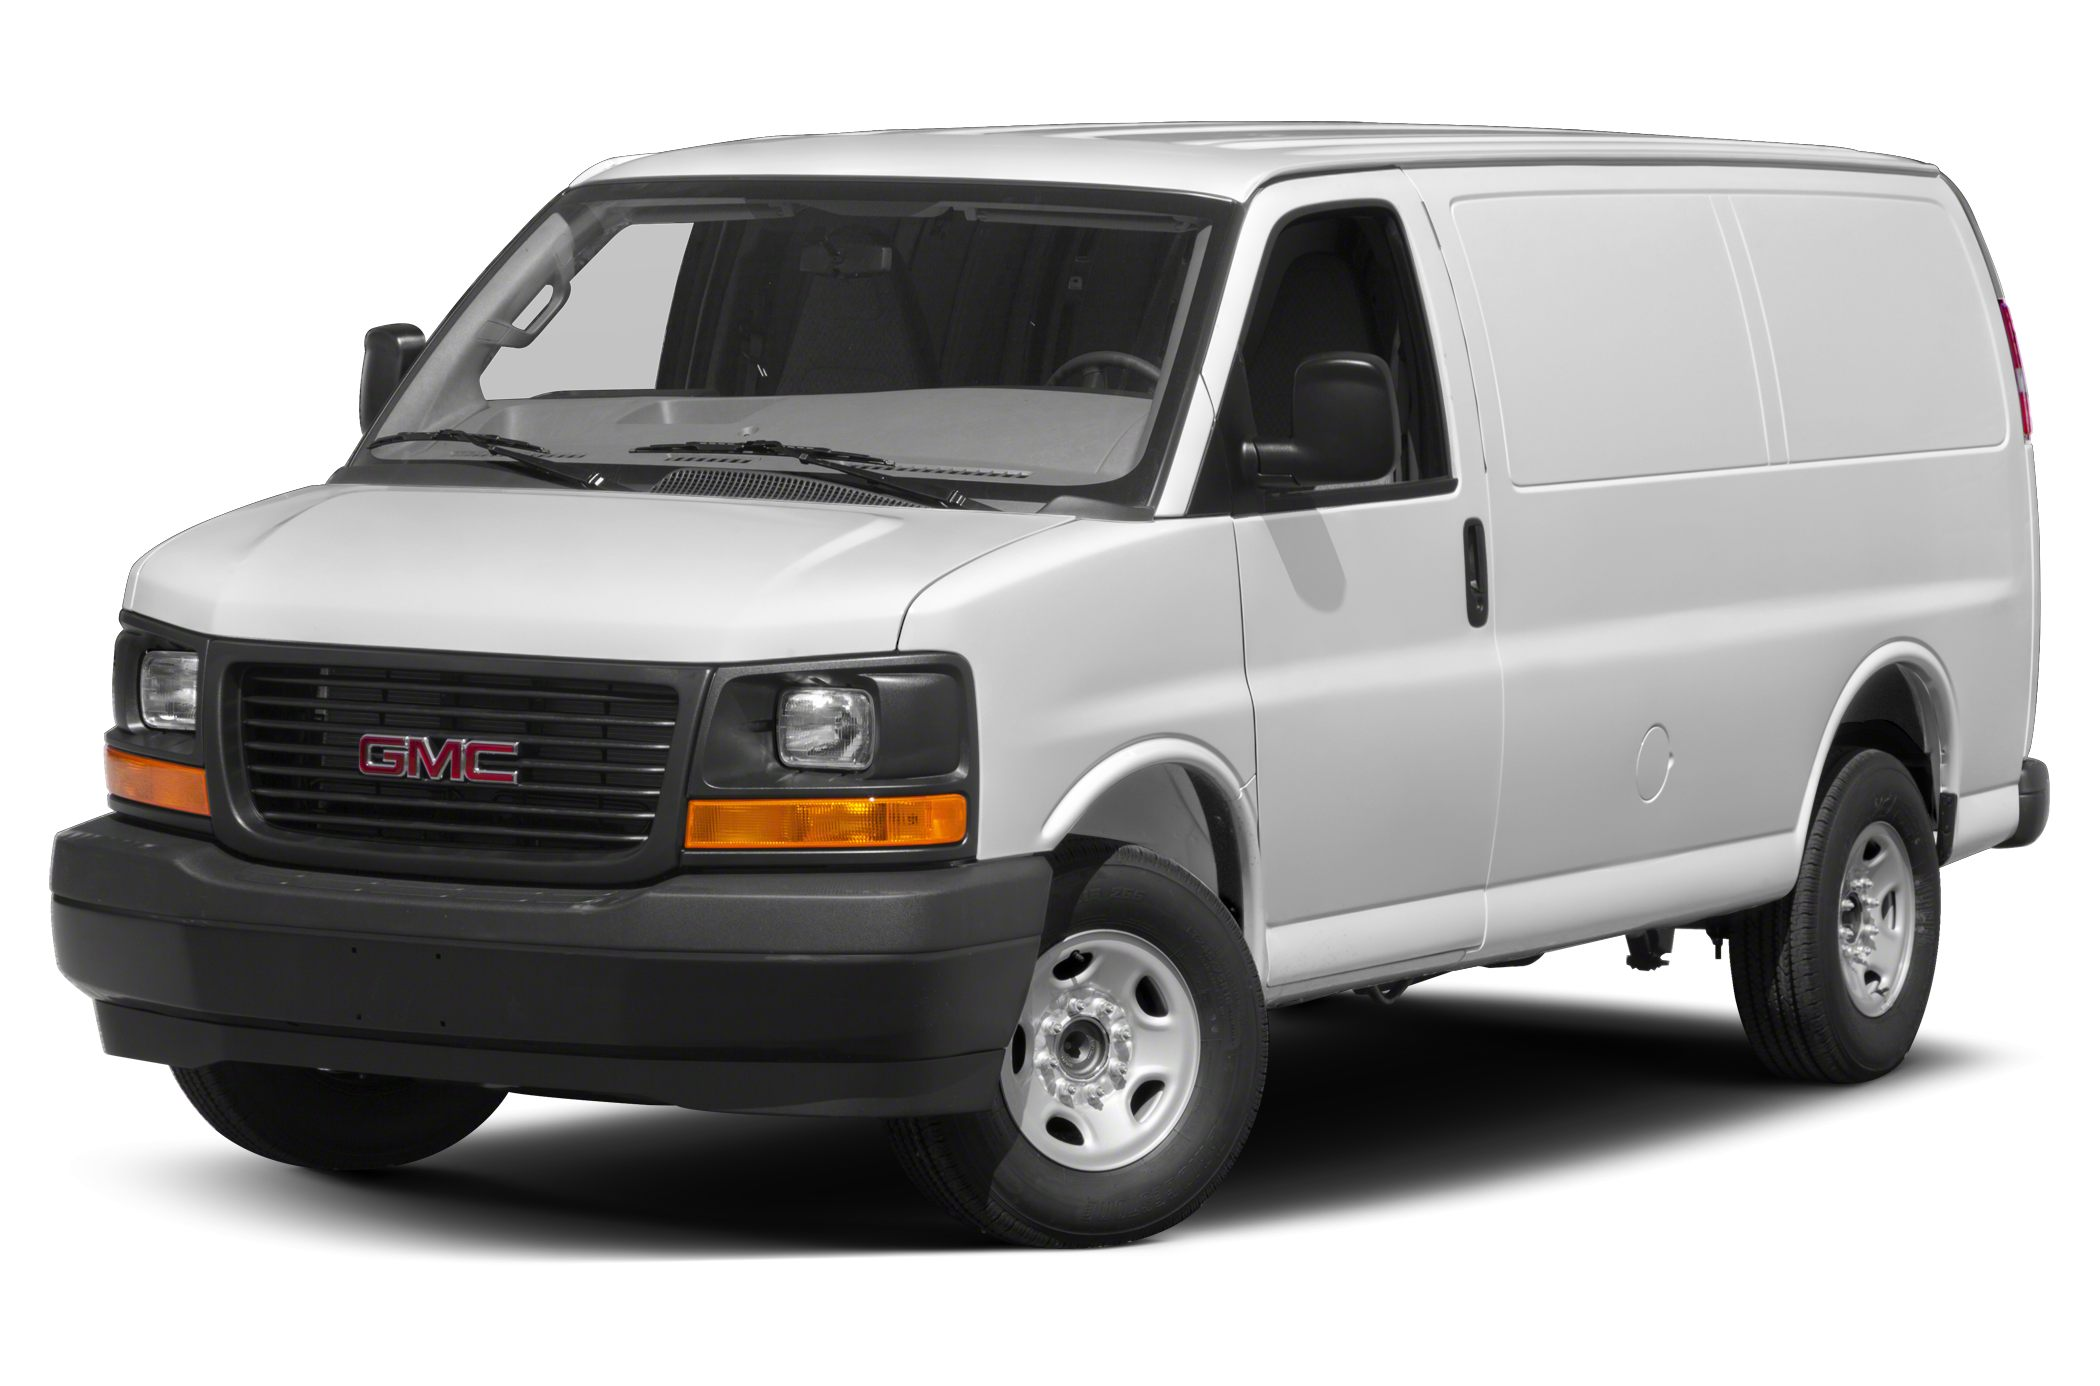 Gmc savana photo - 1